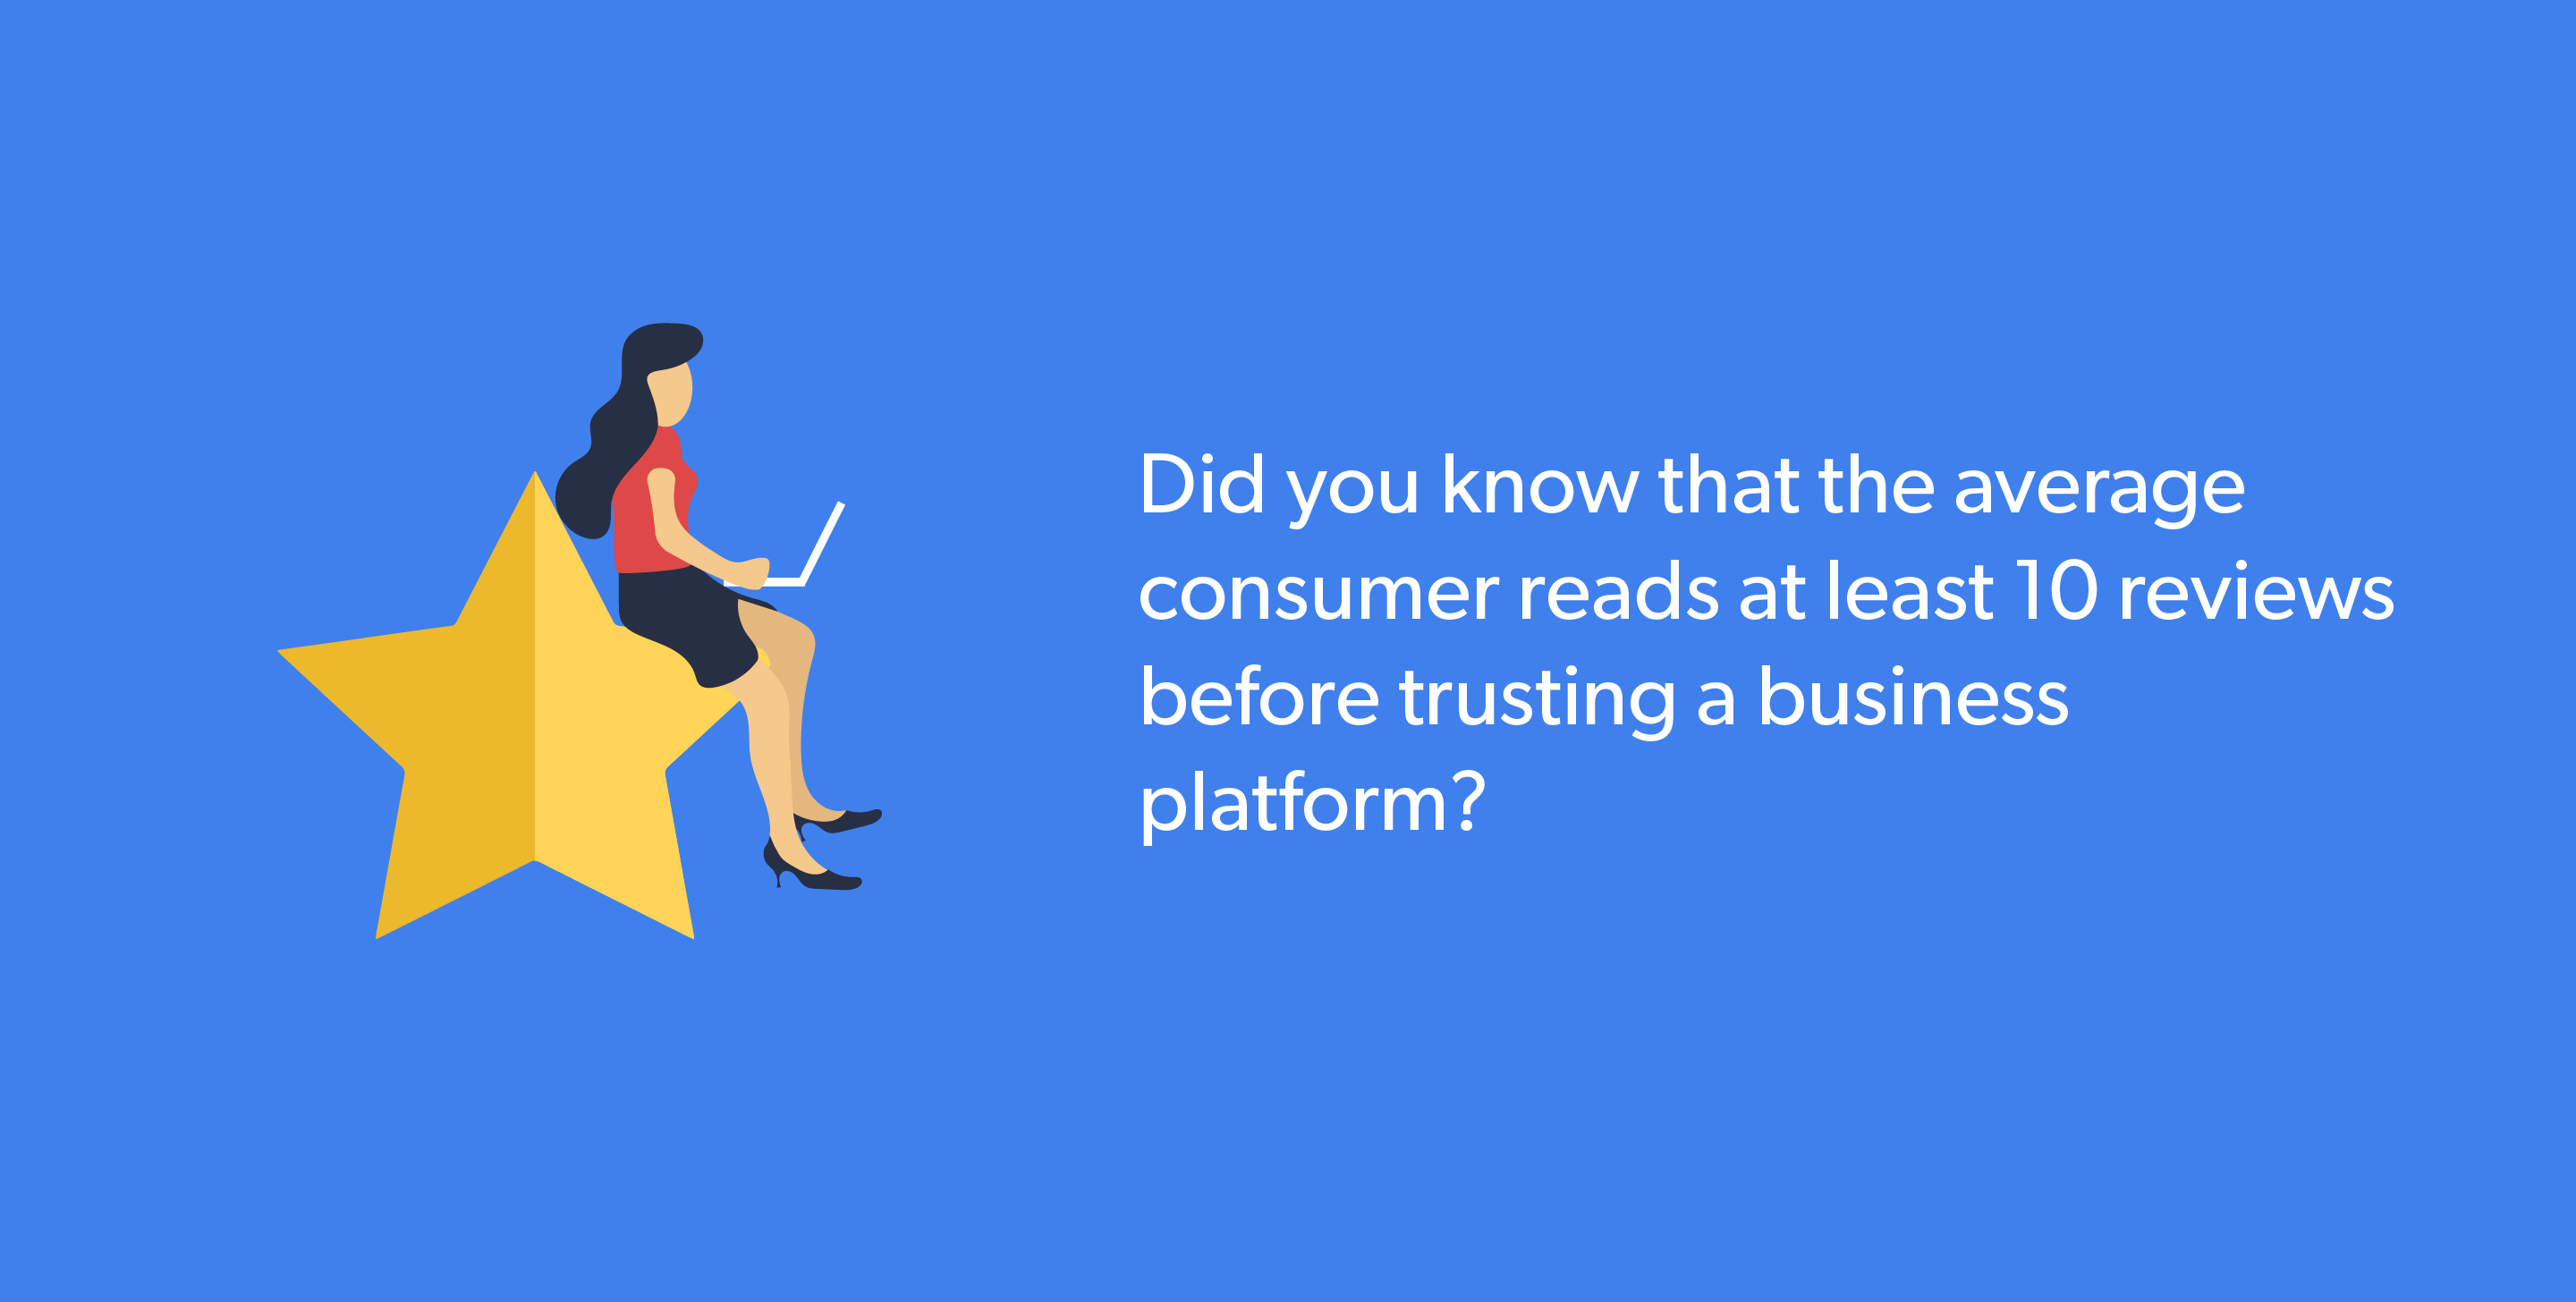 Average consumer reads at least 10 reviews before trusting a business platform.